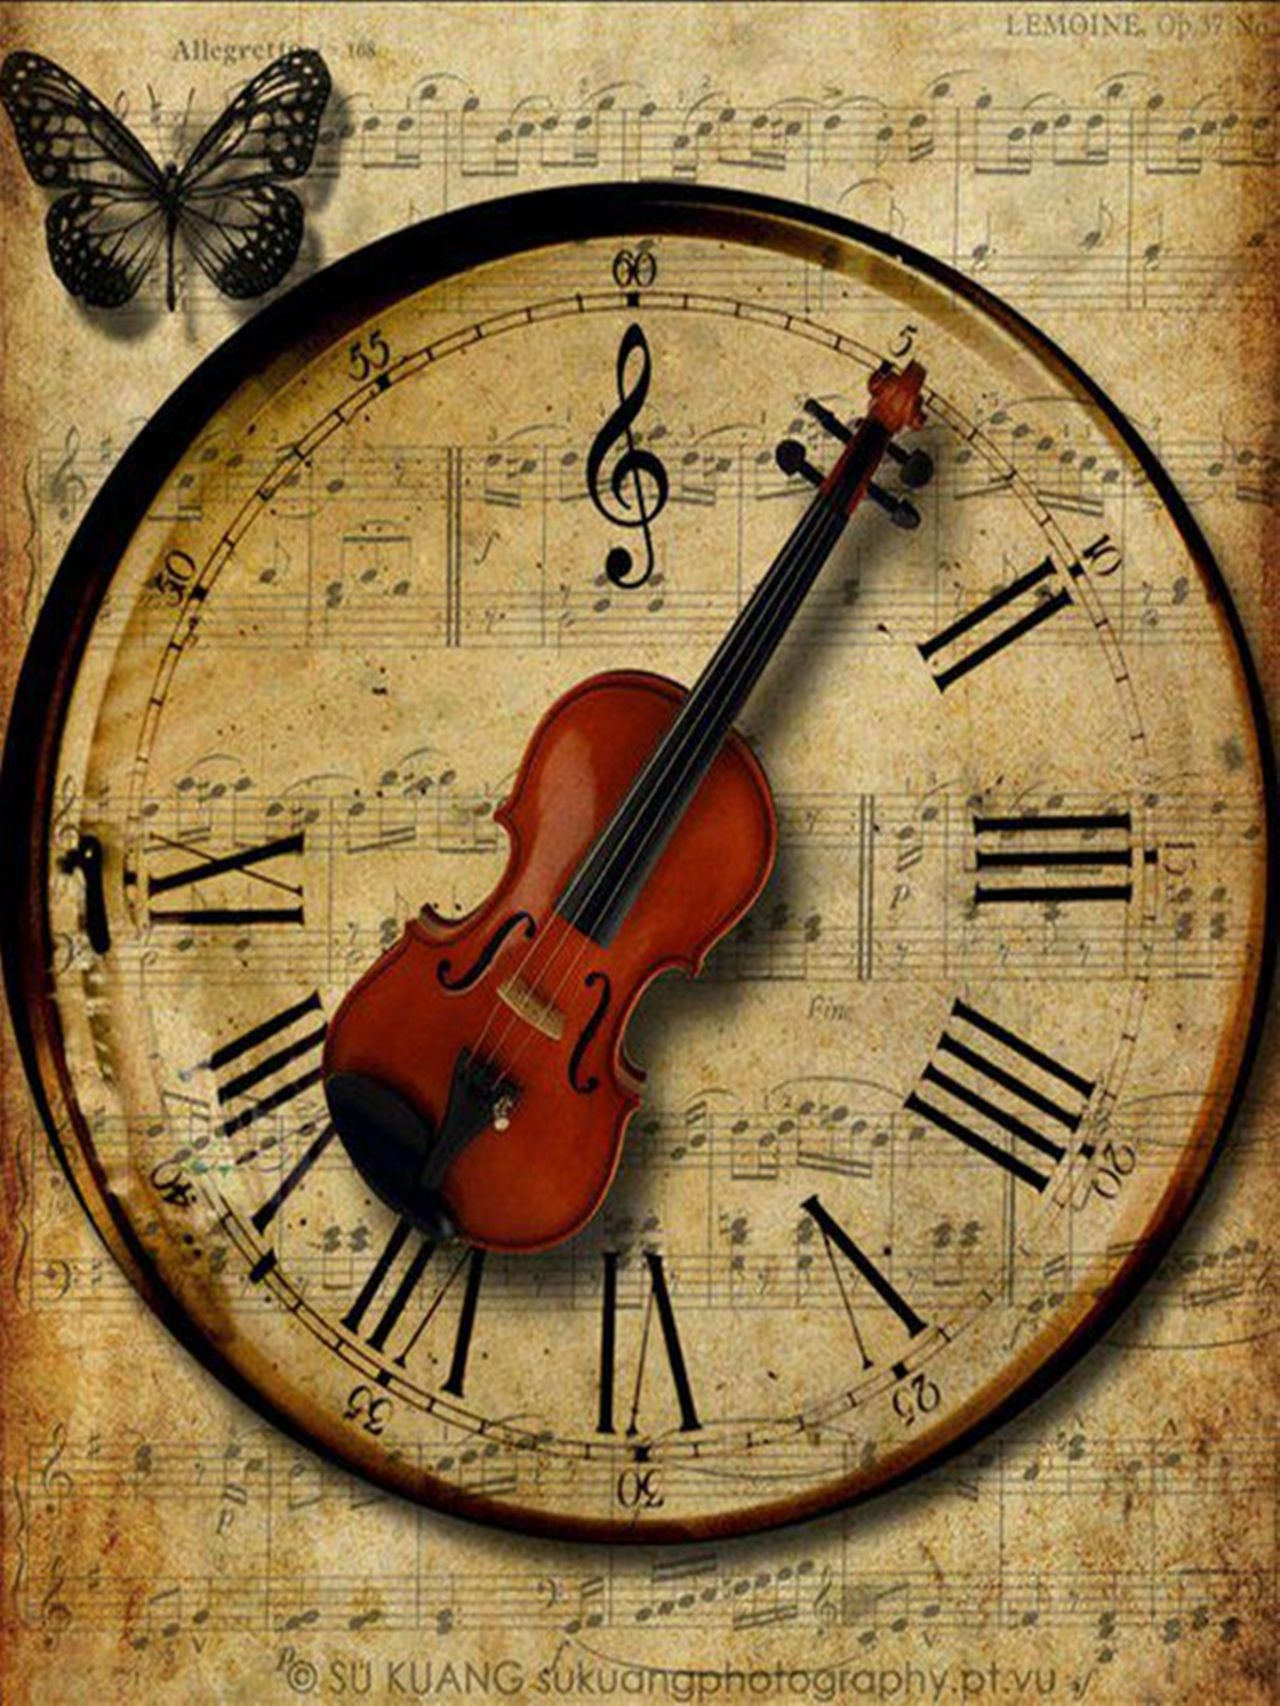 Cool Clock Hands Old Fashioned Clock With Violin As Hands Pointing To Roman